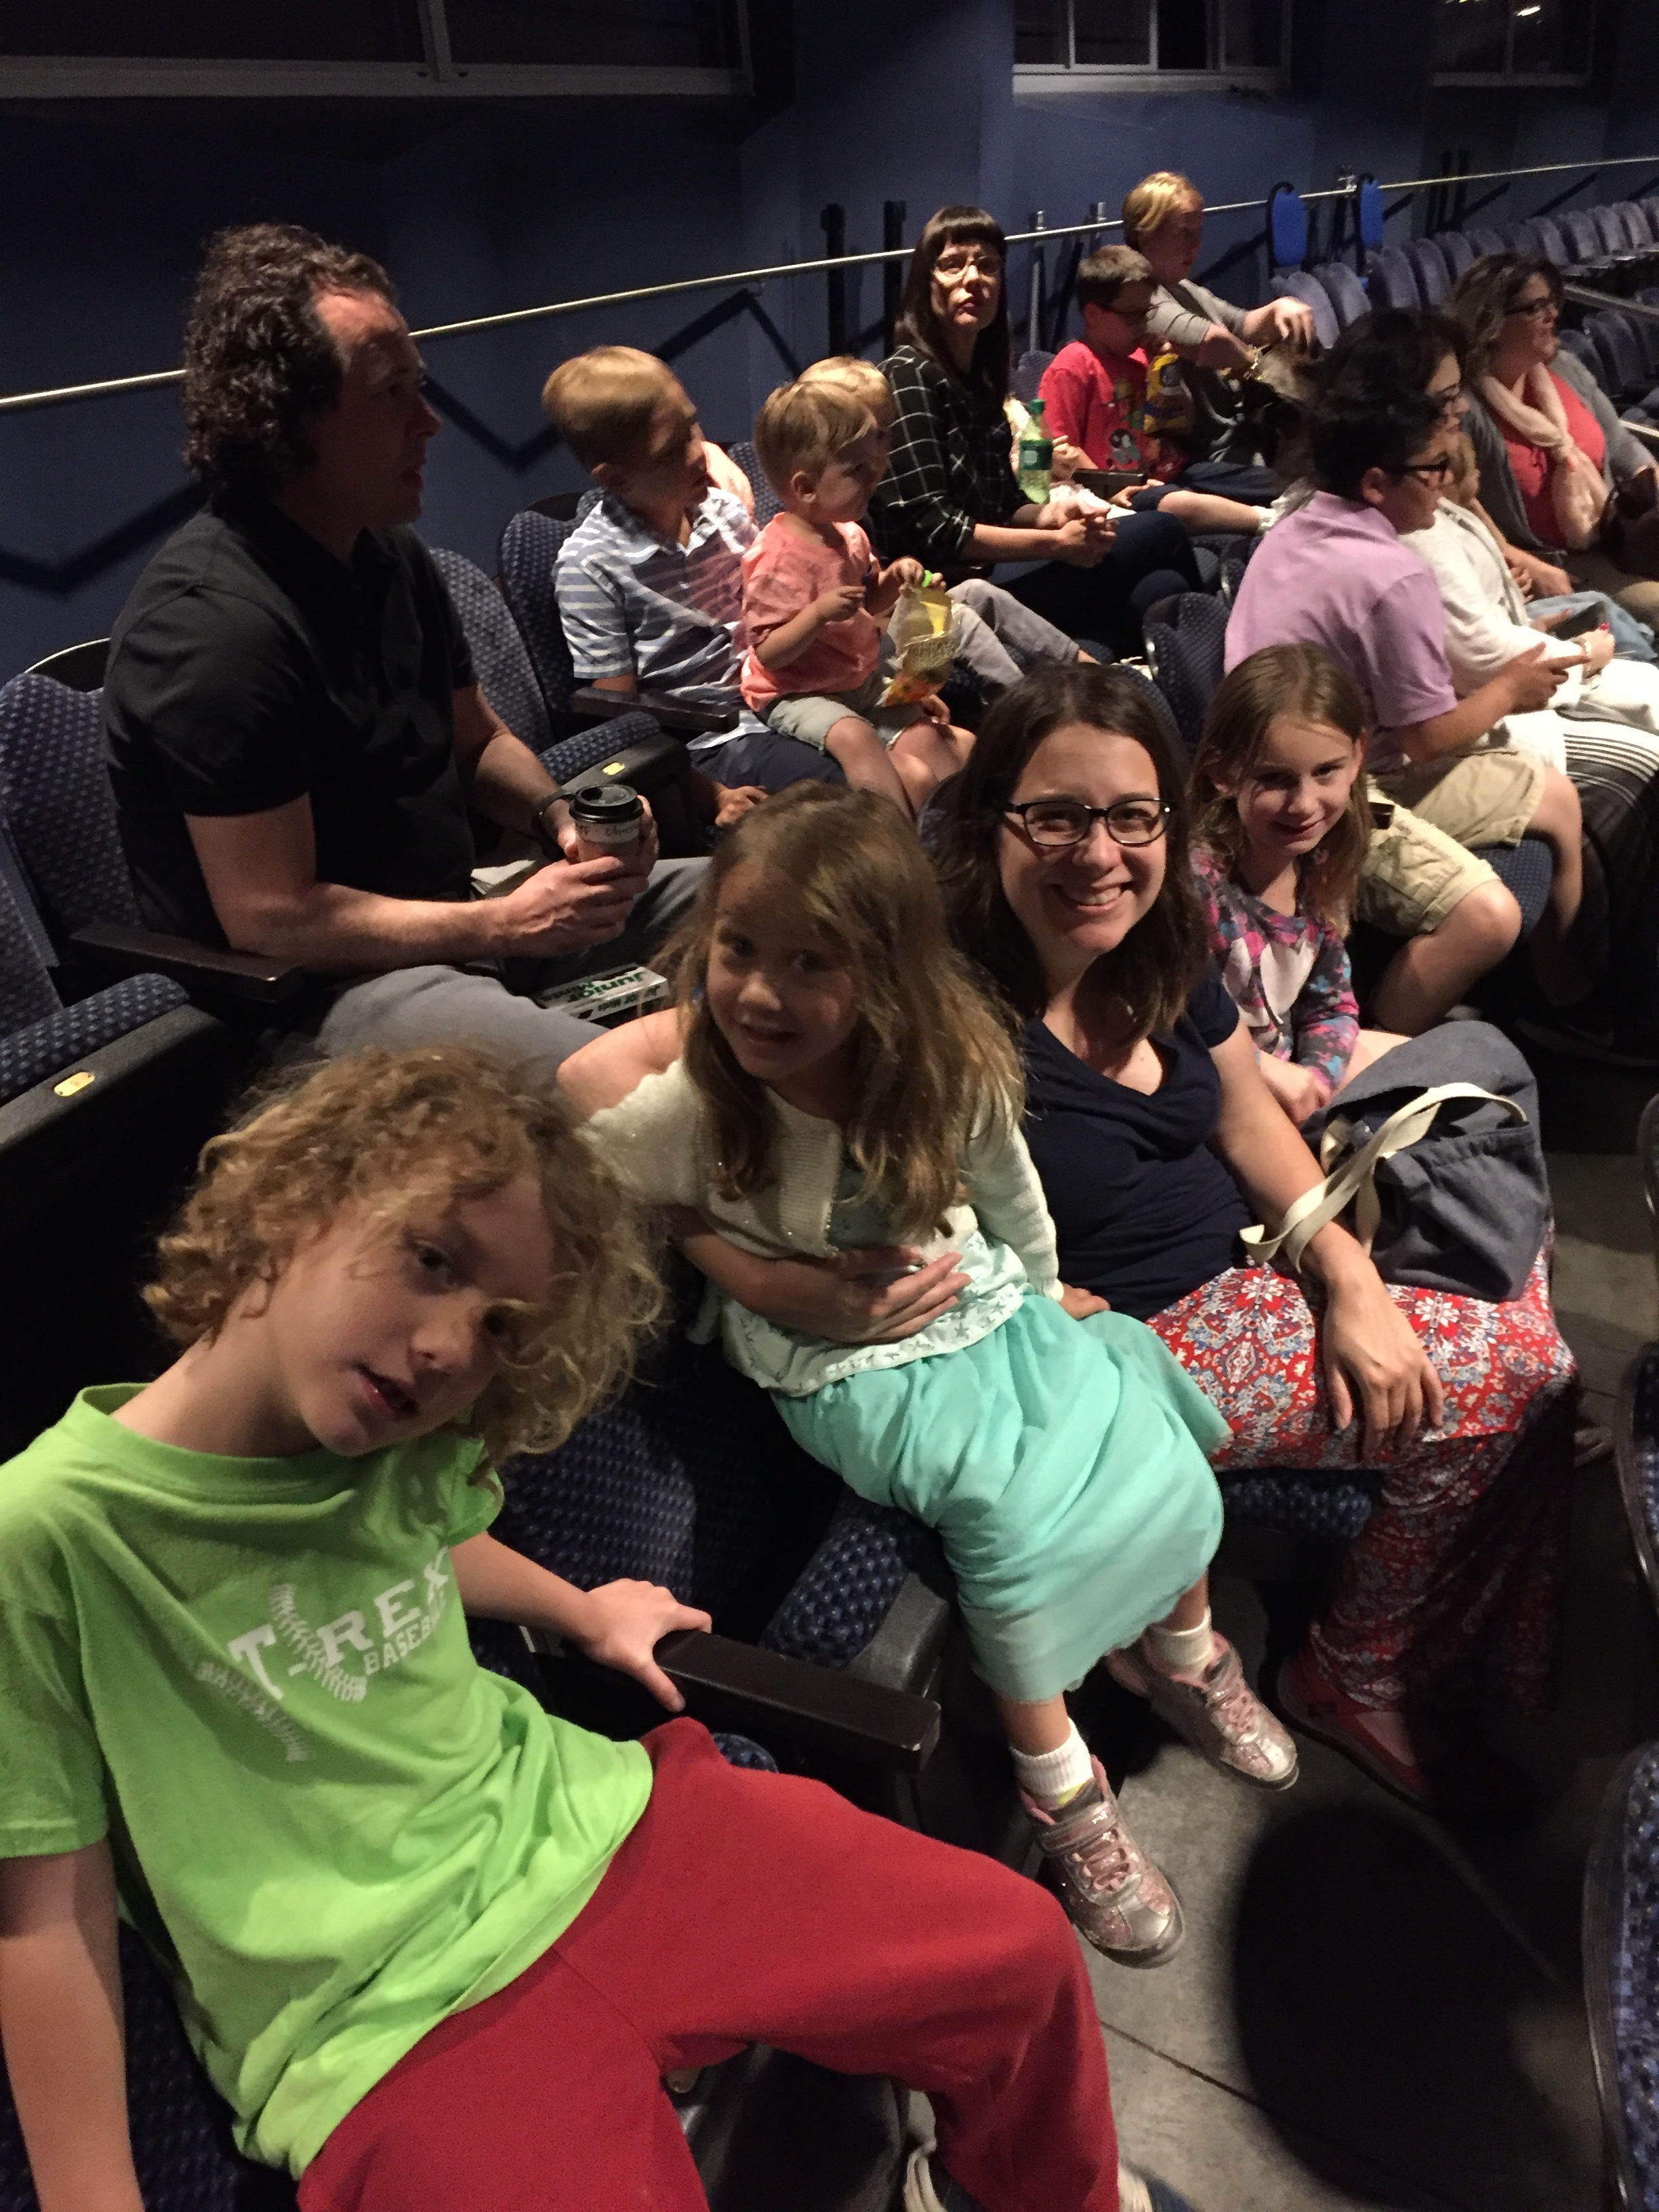 We went to see Wild Kratt's Live! This led to a lot of animal power playtime, Wild Kratt's cartoon watching, and Maia spent her Papa birthday money on a Wild Kratt's power suit and creature power disks!